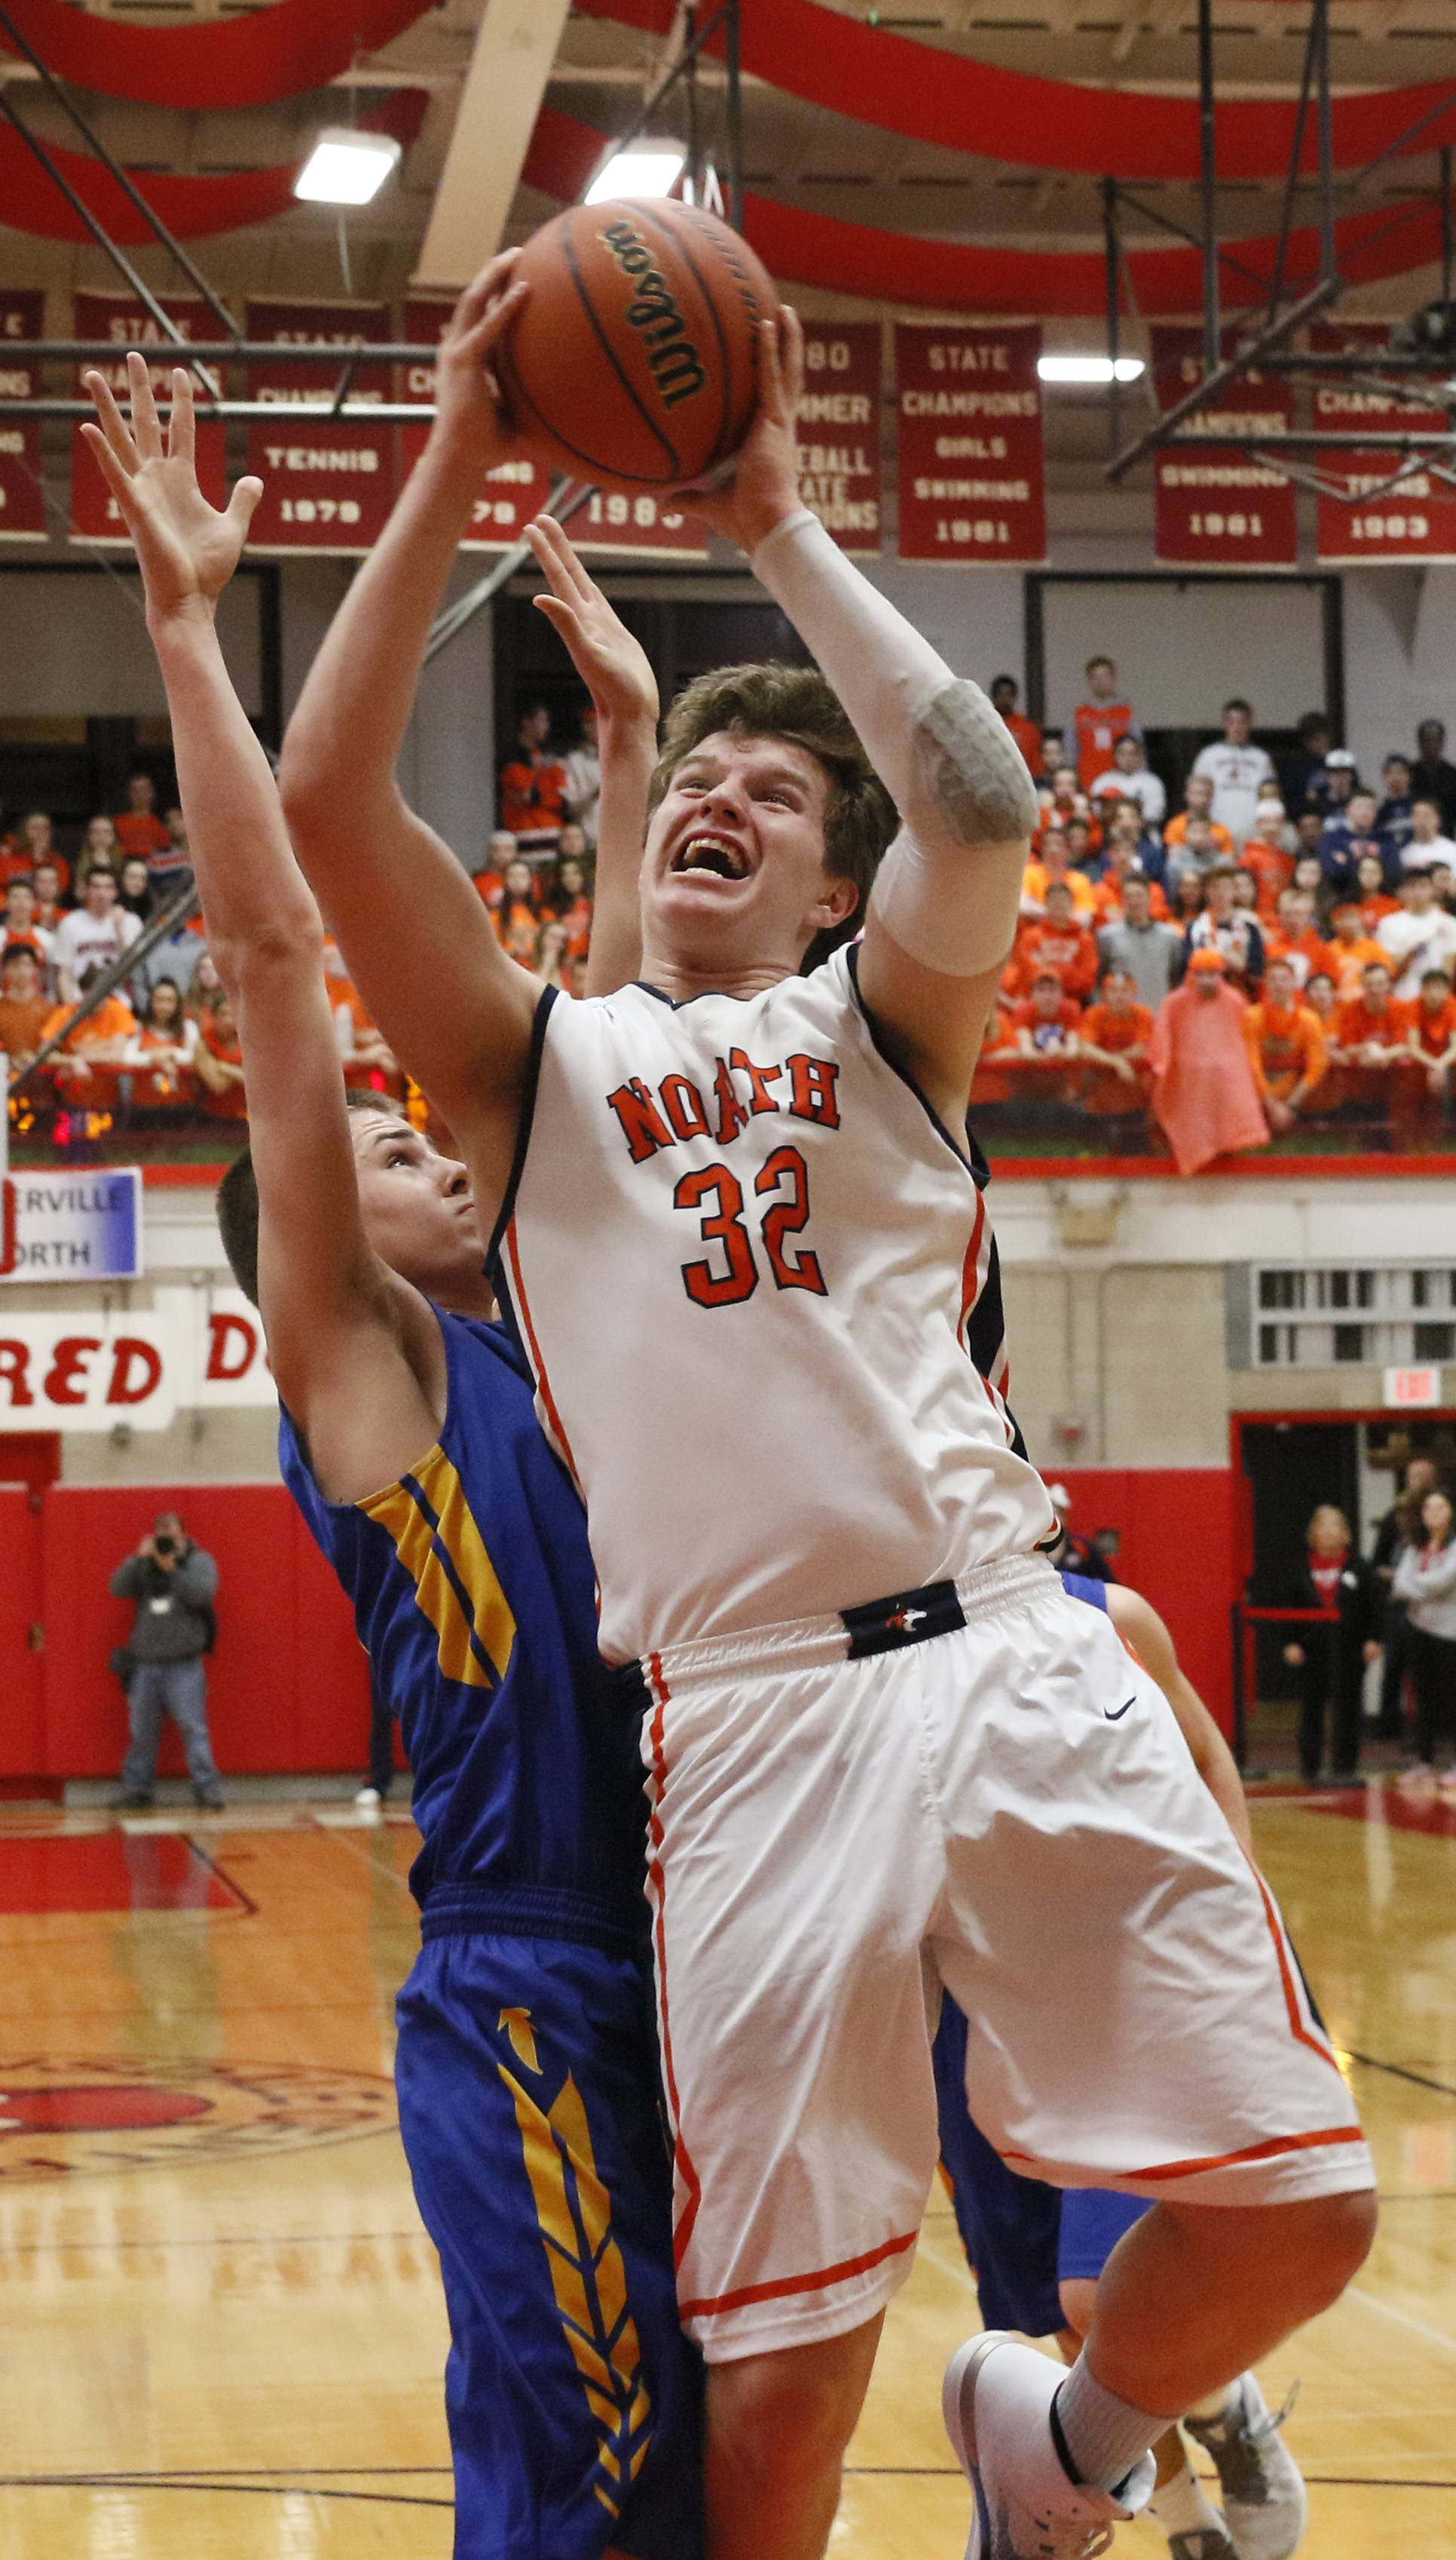 Naperville North will play Bolingbrook at the Class 4A Northern Illinois University supersectional at 7:30 p.m. Tuesday.